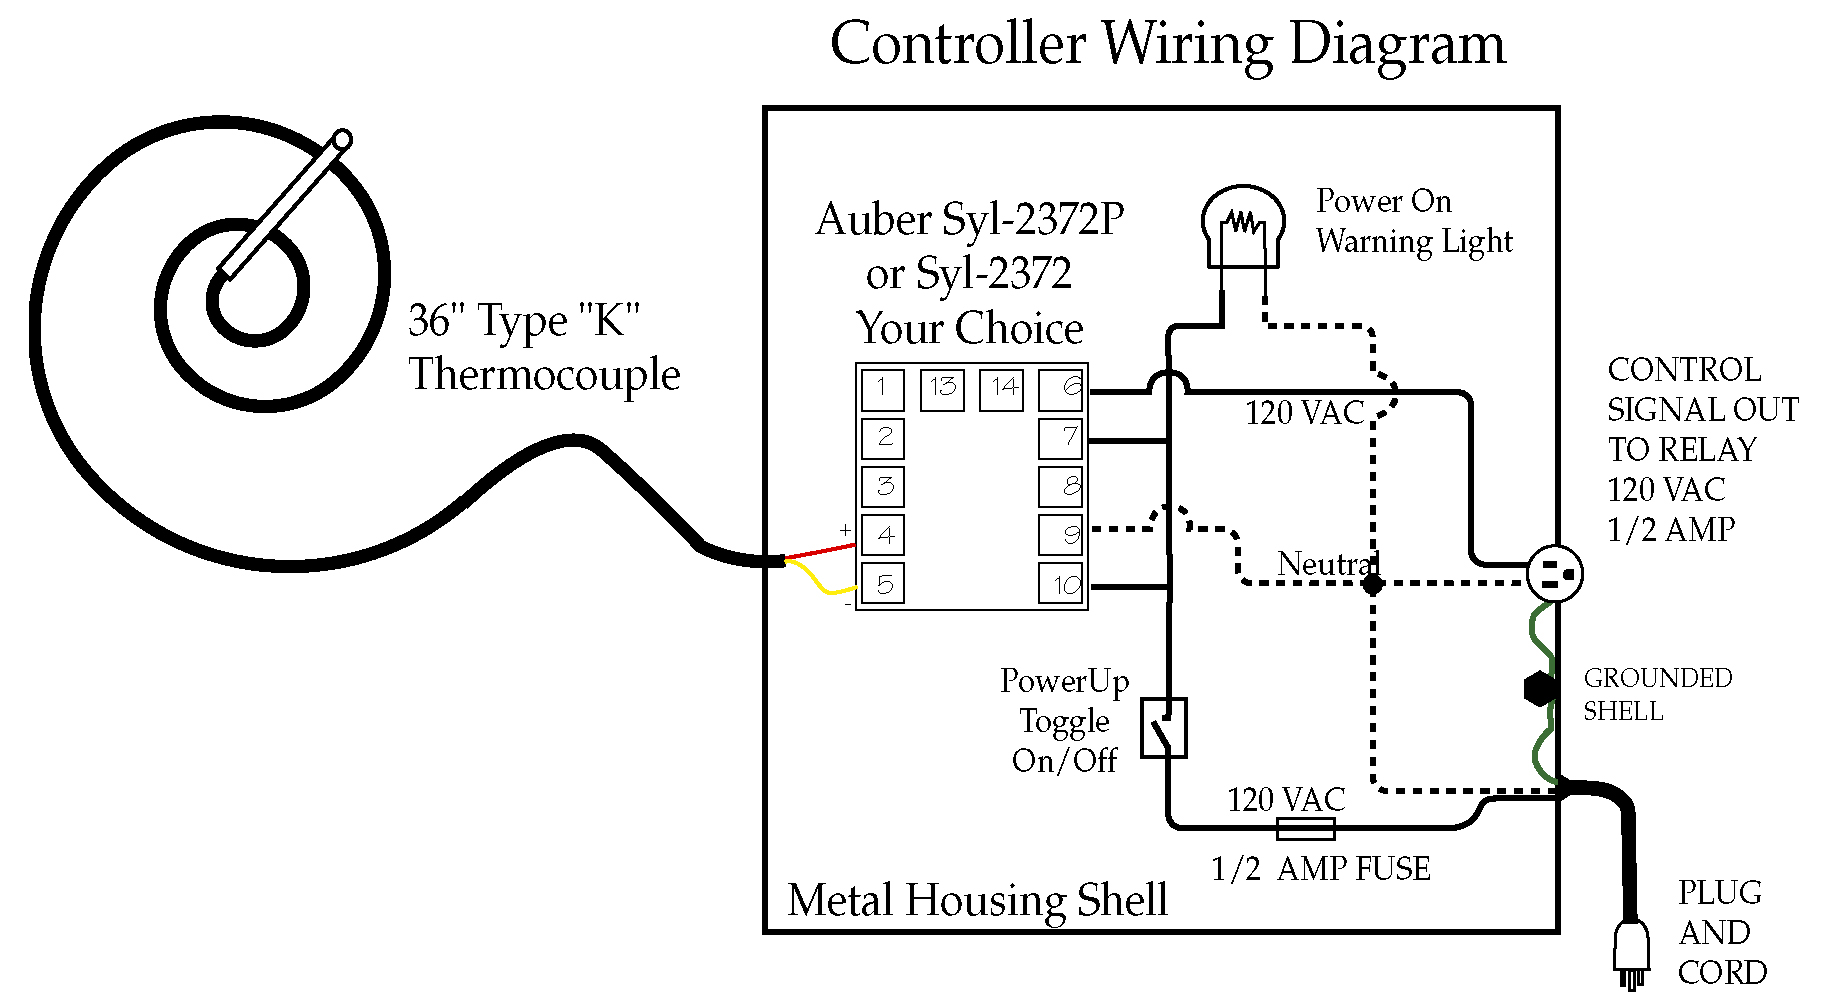 CONT_WIRING_DIAG modules thermomart pid kiln controller wiring diagram at gsmx.co